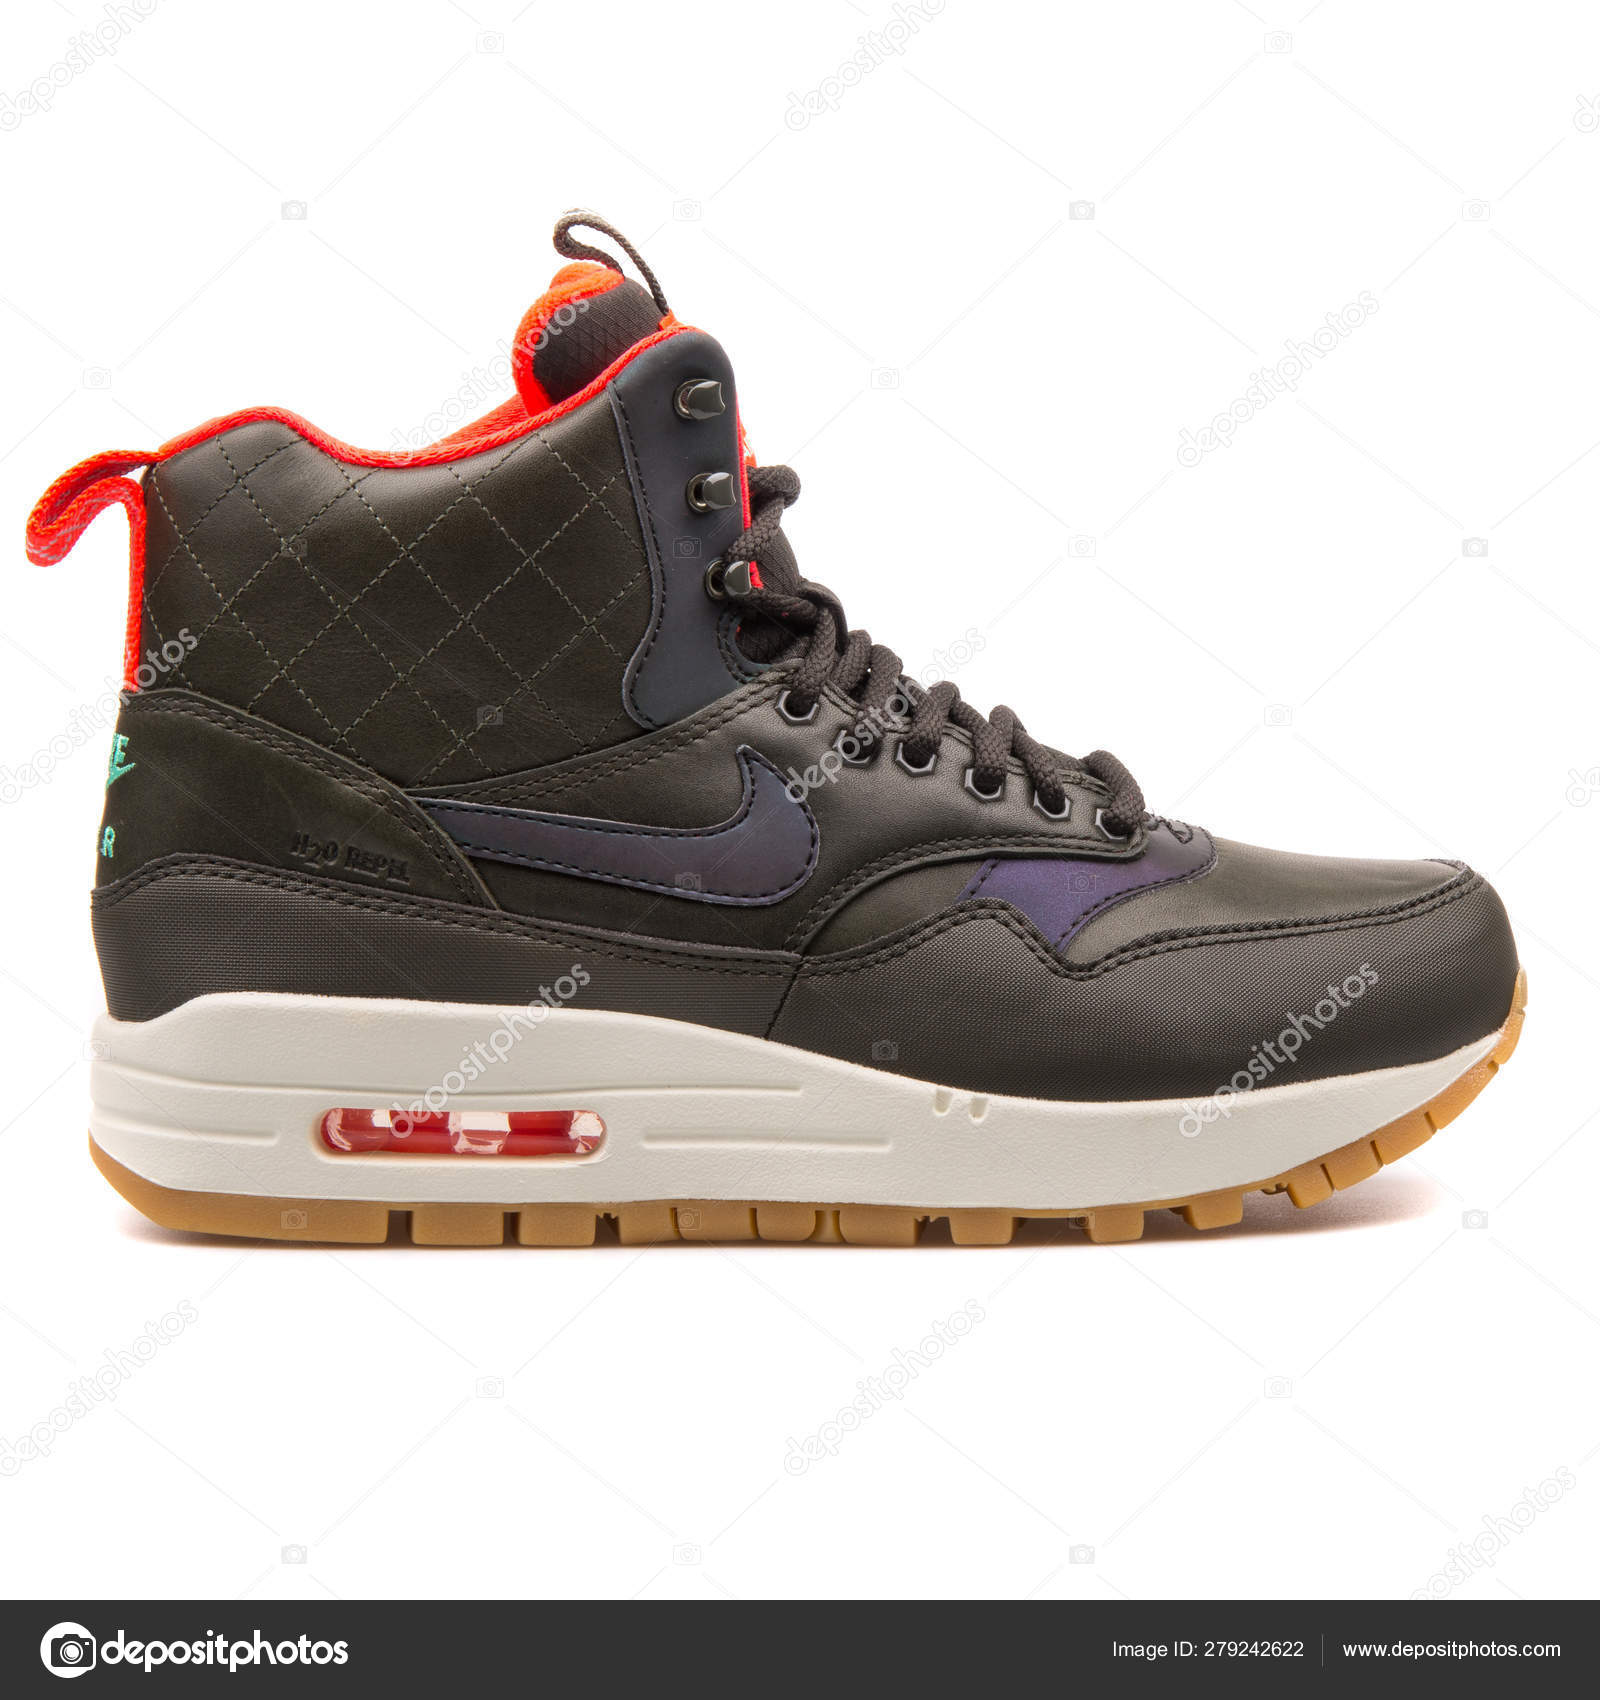 Persona australiana envidia equilibrio  Nike Air Max 1 Mid Sneakerboot Reflect black and red sneaker – Stock  Editorial Photo © xMarshallfilms #279242622